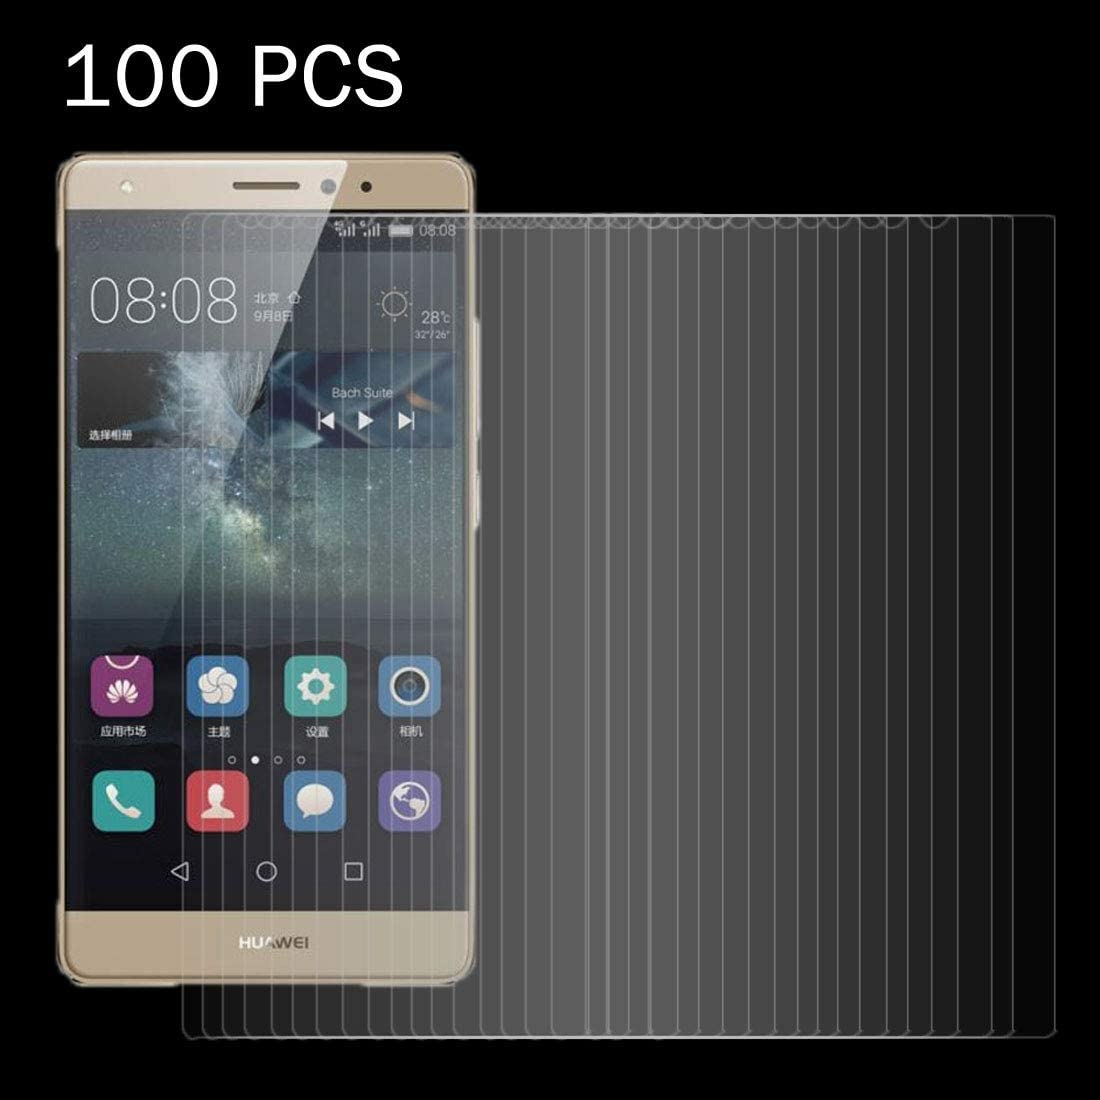 100 PCS for Huawei Mate S 0.26mm 9H Surface Hardness 2.5D Explosion-Proof Tempered Glass Screen Film Clear YINZHI Screen Protector Film